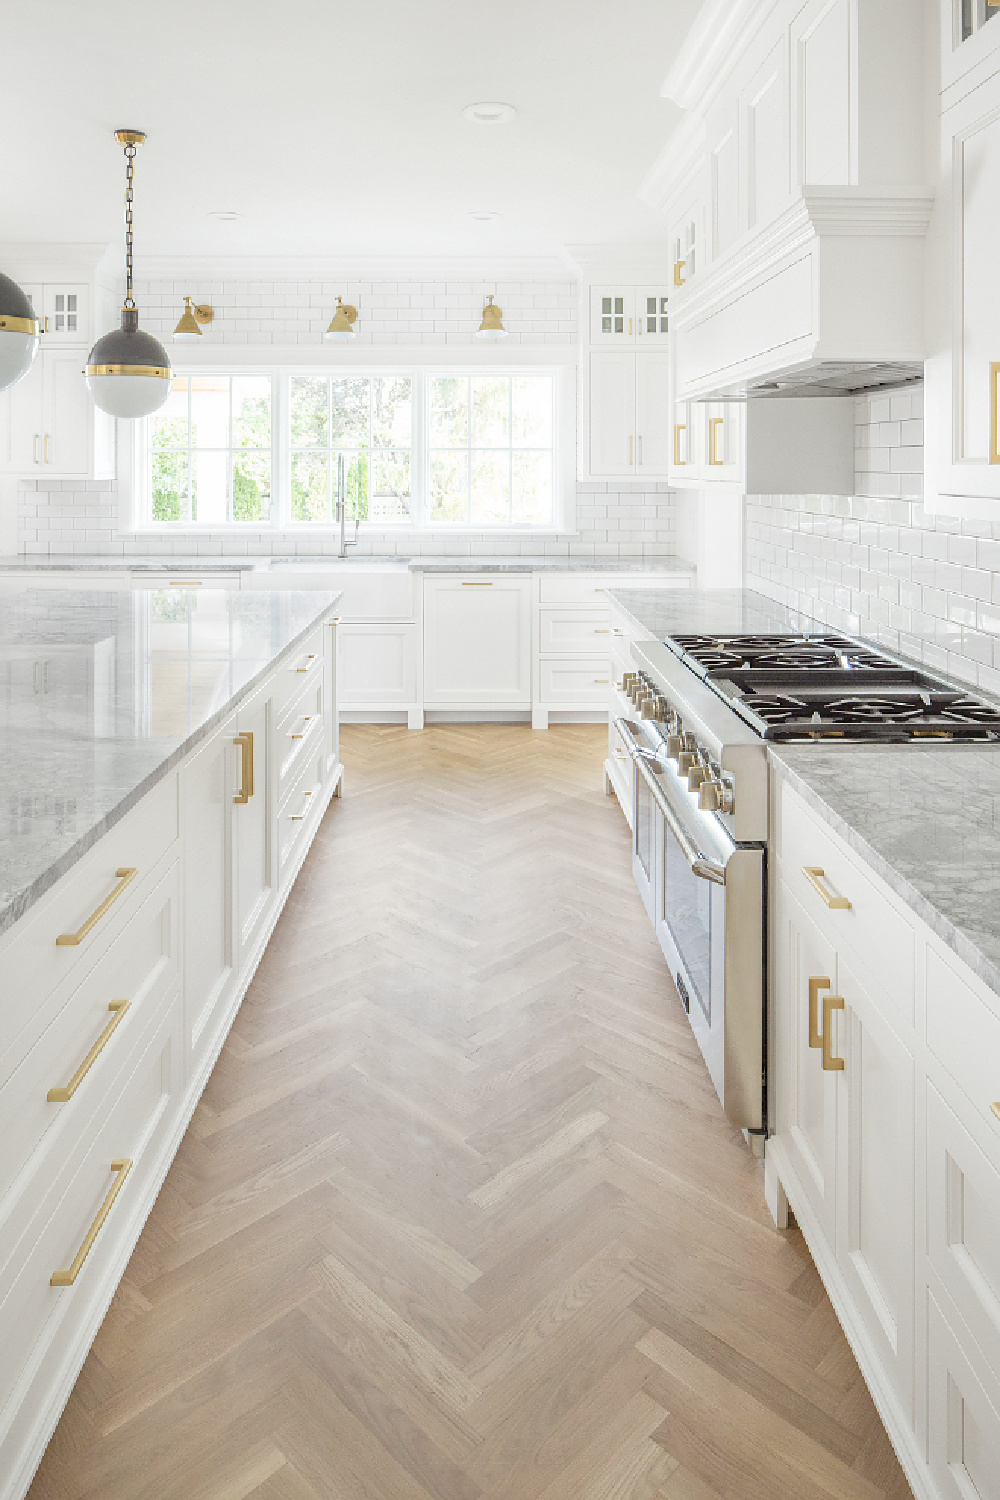 Modern farmhouse kitchen with Hicks pendants over island, herringbone wood floor, and brass library lights. Design by The Fox Group. Come BE INSPIRED by more Timeless Interior Design Ideas, Paint Colors & Furniture Finds. #thefoxgroup #kitchendesign #modernfarmhouse #herringbonefloor #hicks #islandpendants #timelessdesign